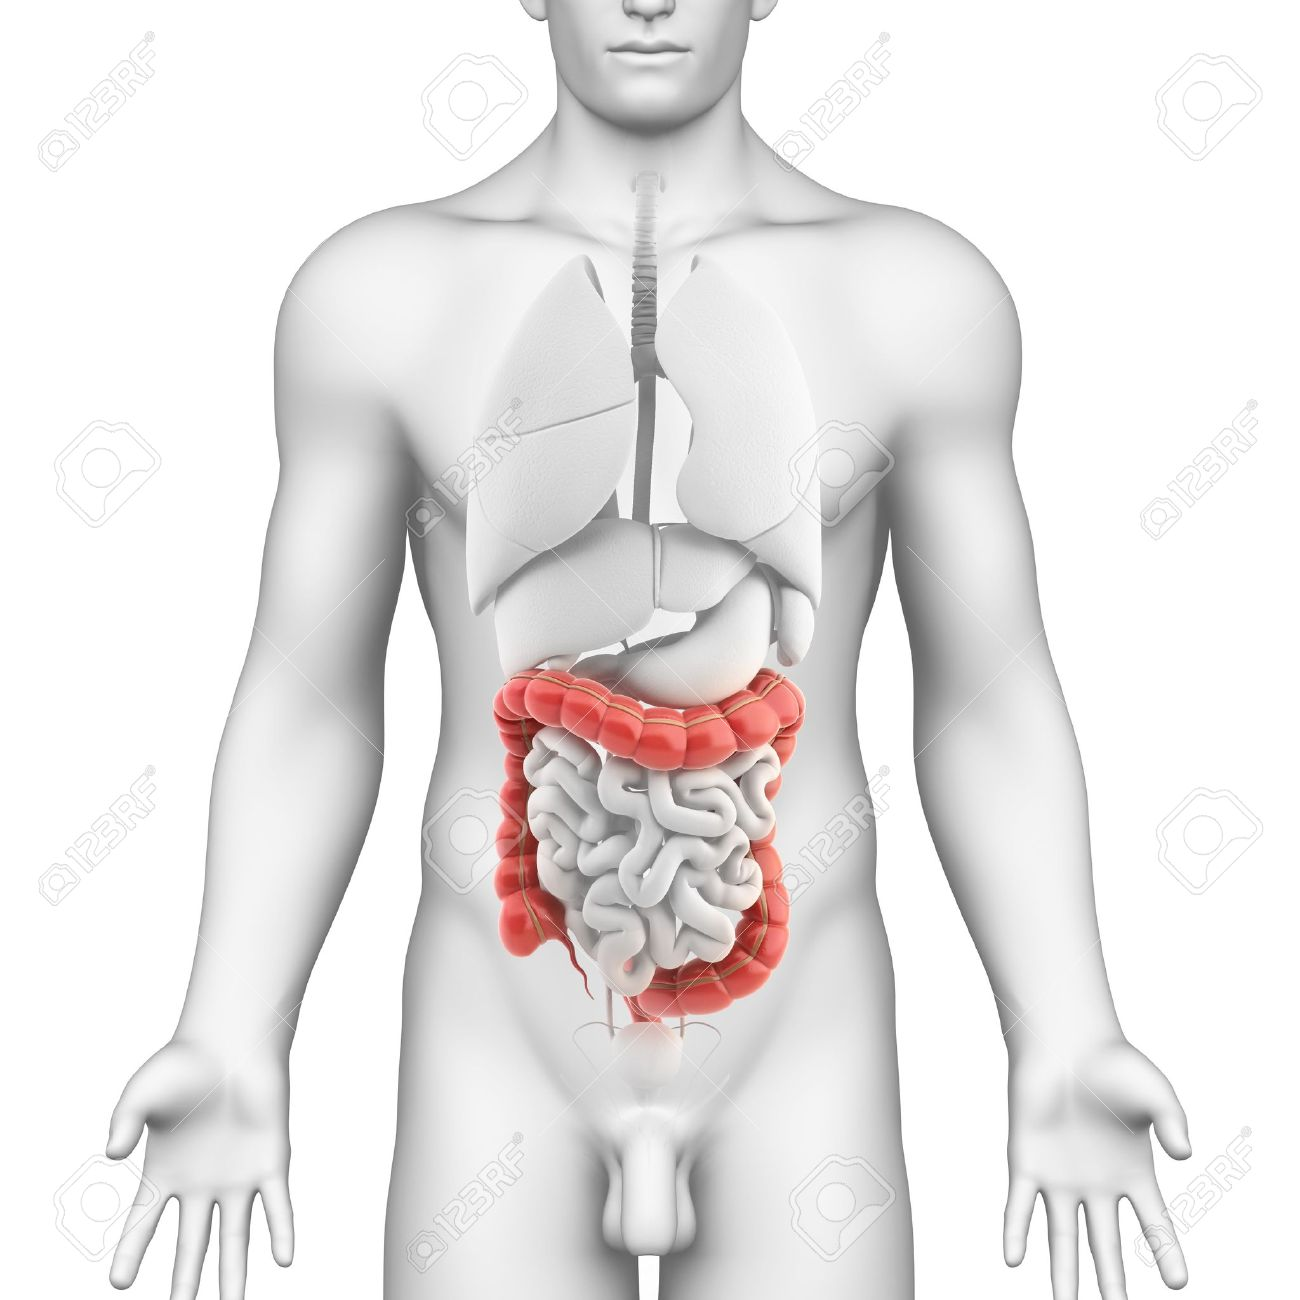 Colon Anatomy Of Male Digestive System Stock Photo, Picture And ...